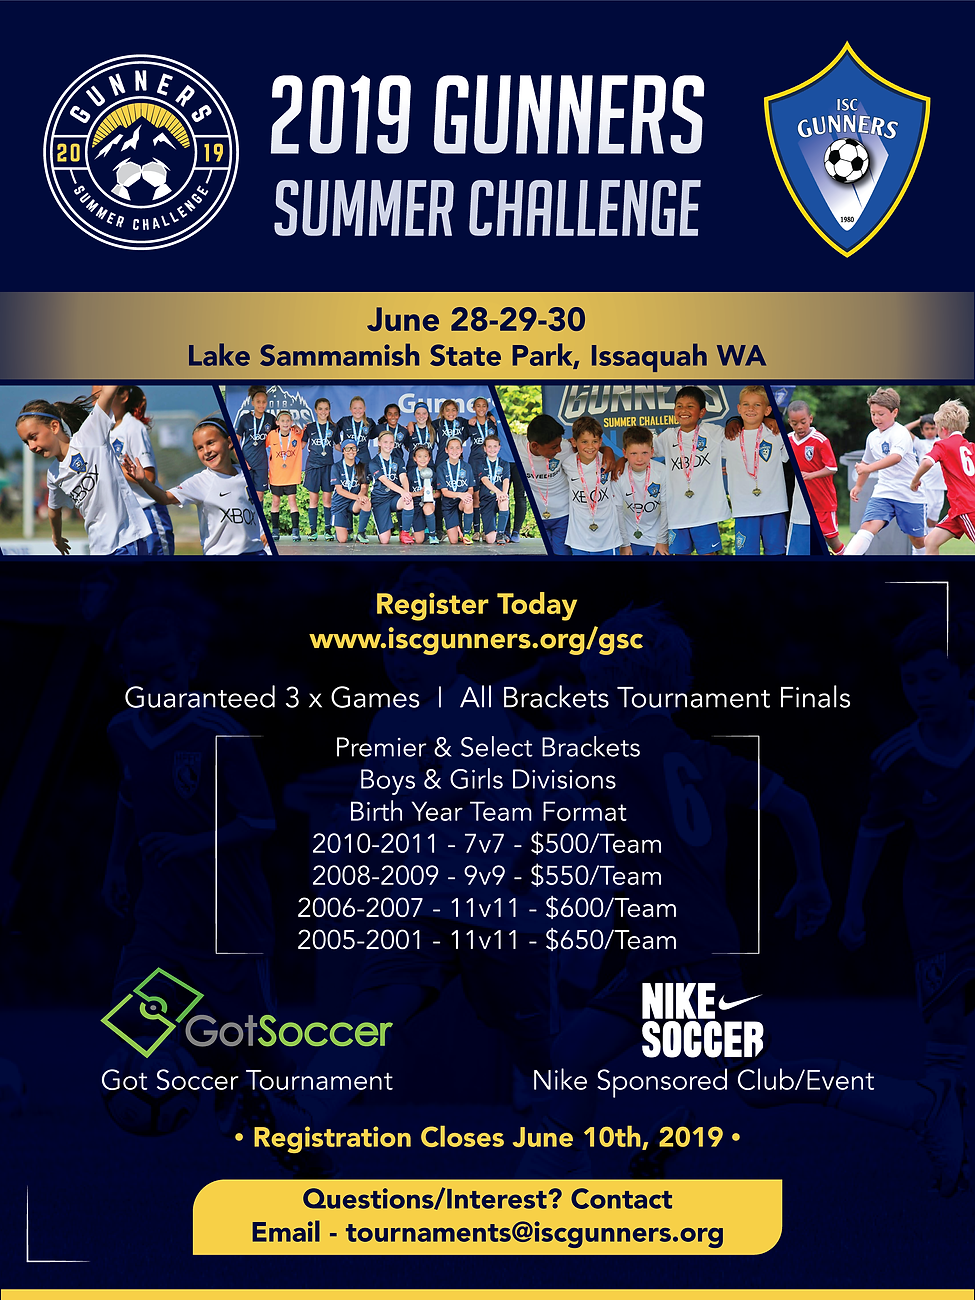 FLYER - GUNNERS SUMMER CHALLENGE JUNE 28